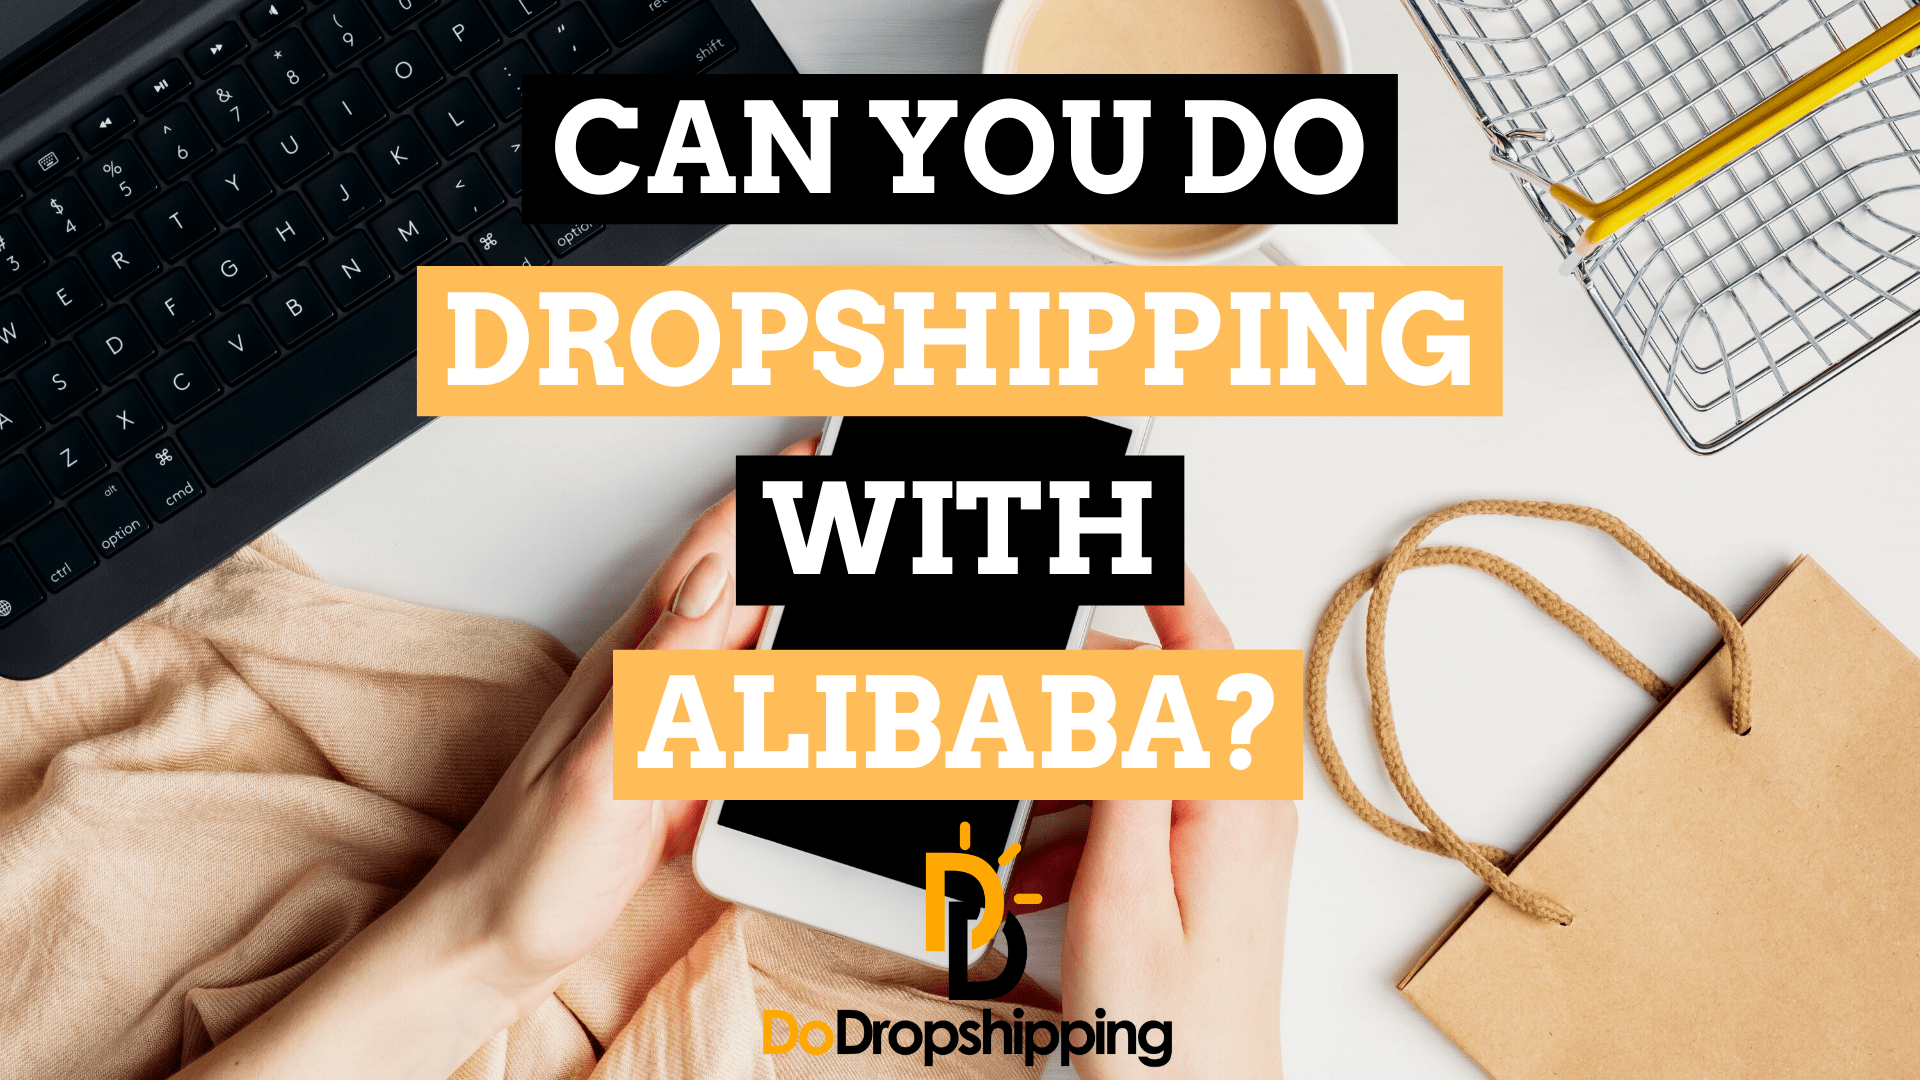 Can You Do Dropshipping With Alibaba?